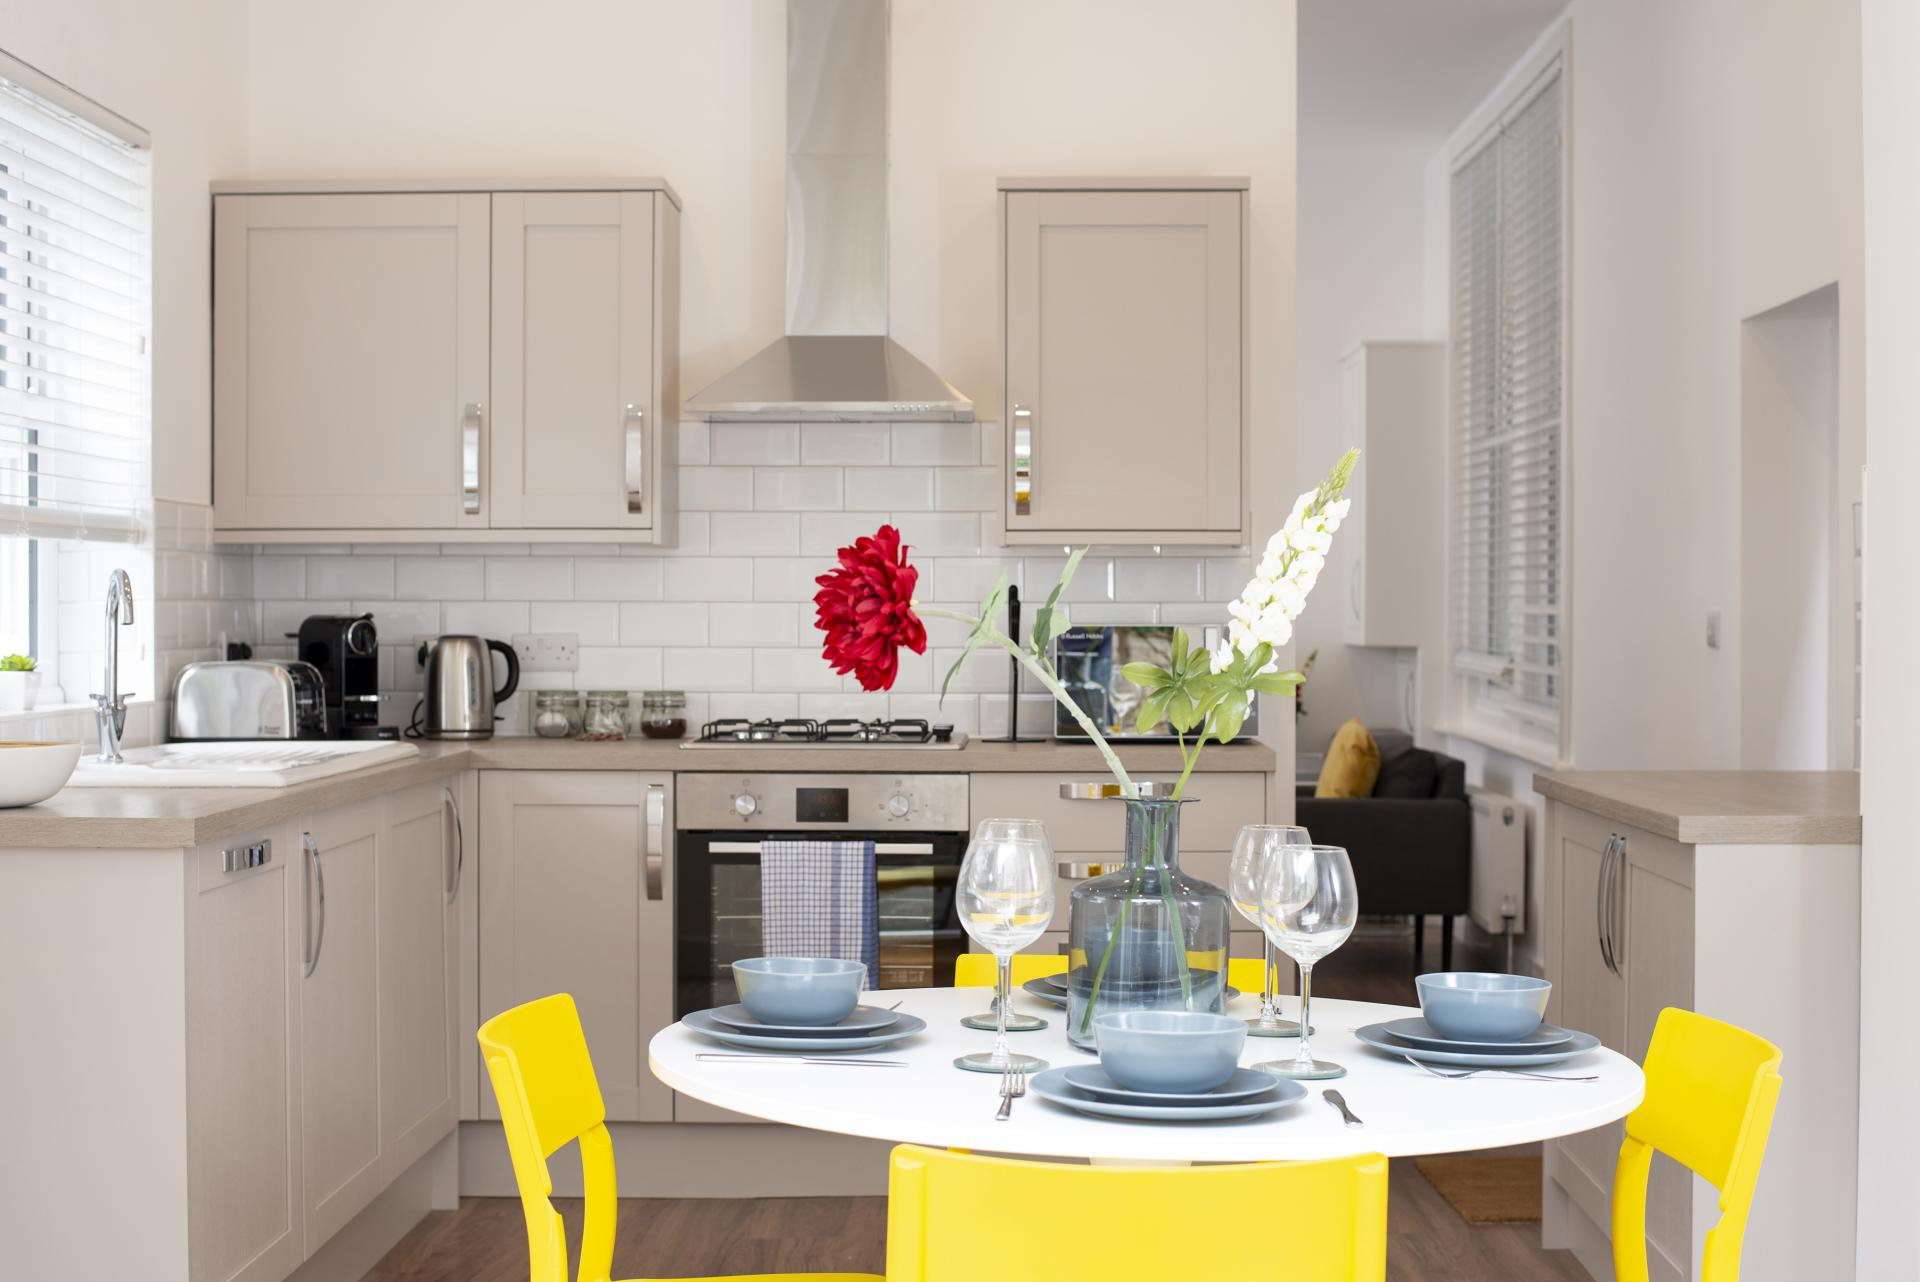 Kitchen Diner at Hereford House Apartments, Southsea, Portsmouth